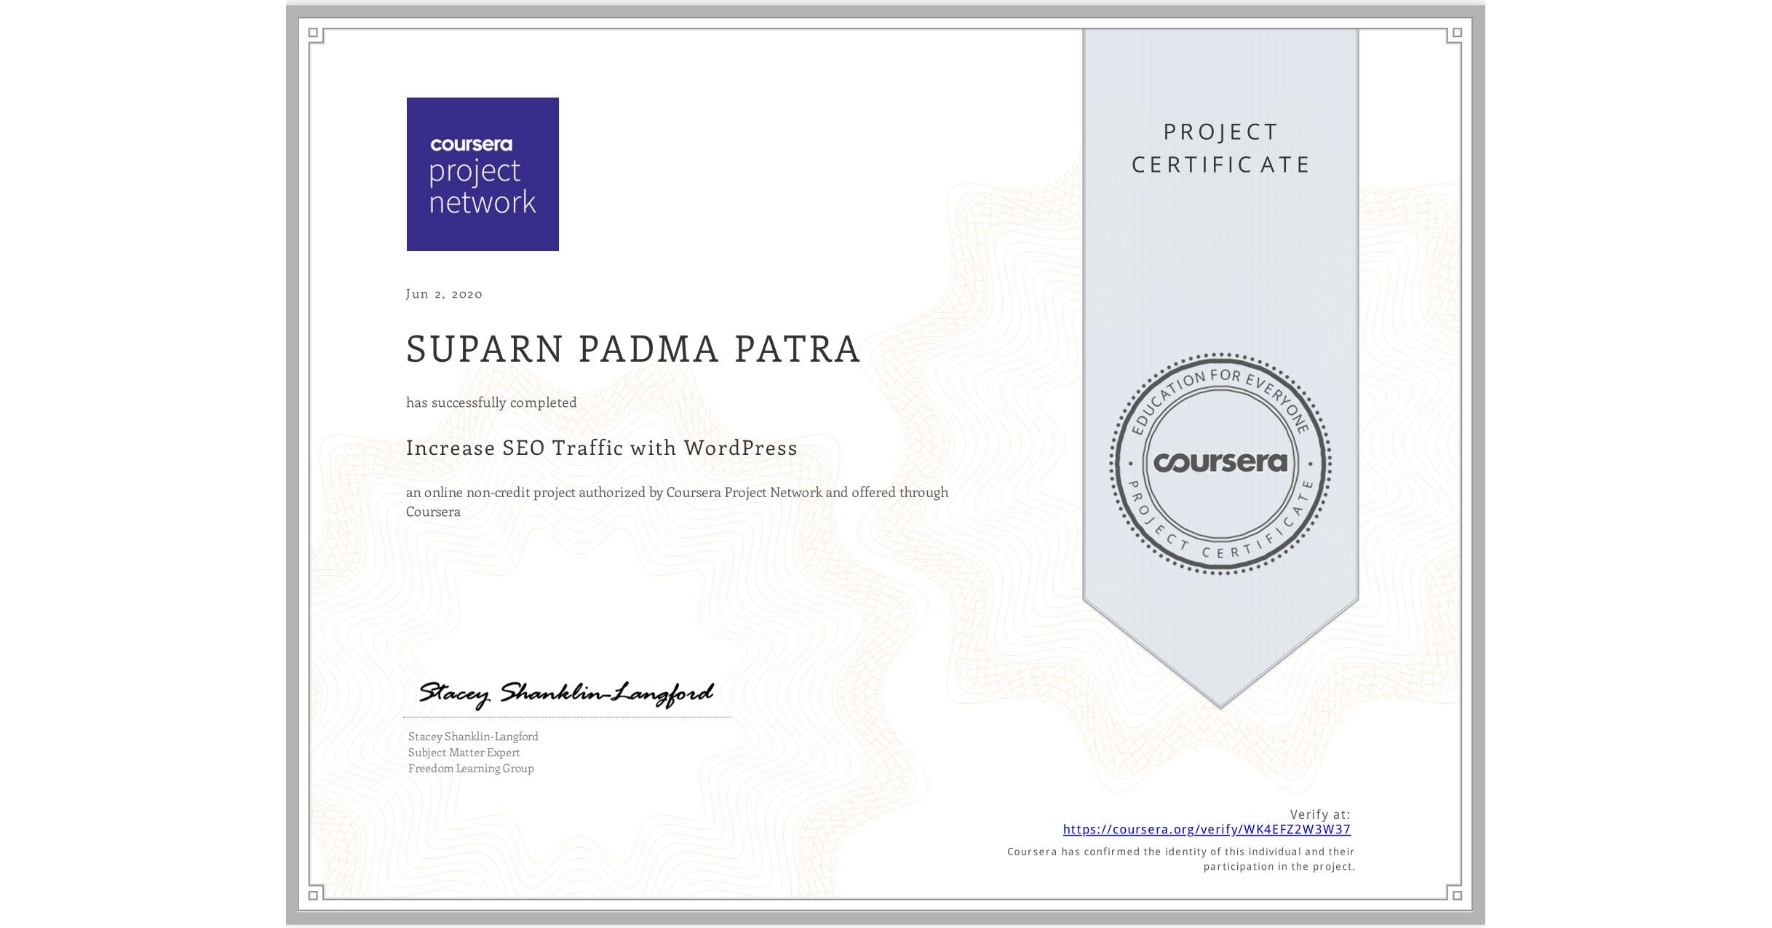 View certificate for SUPARN PADMA  PATRA, Increase SEO Traffic with WordPress, an online non-credit course authorized by Coursera Project Network and offered through Coursera